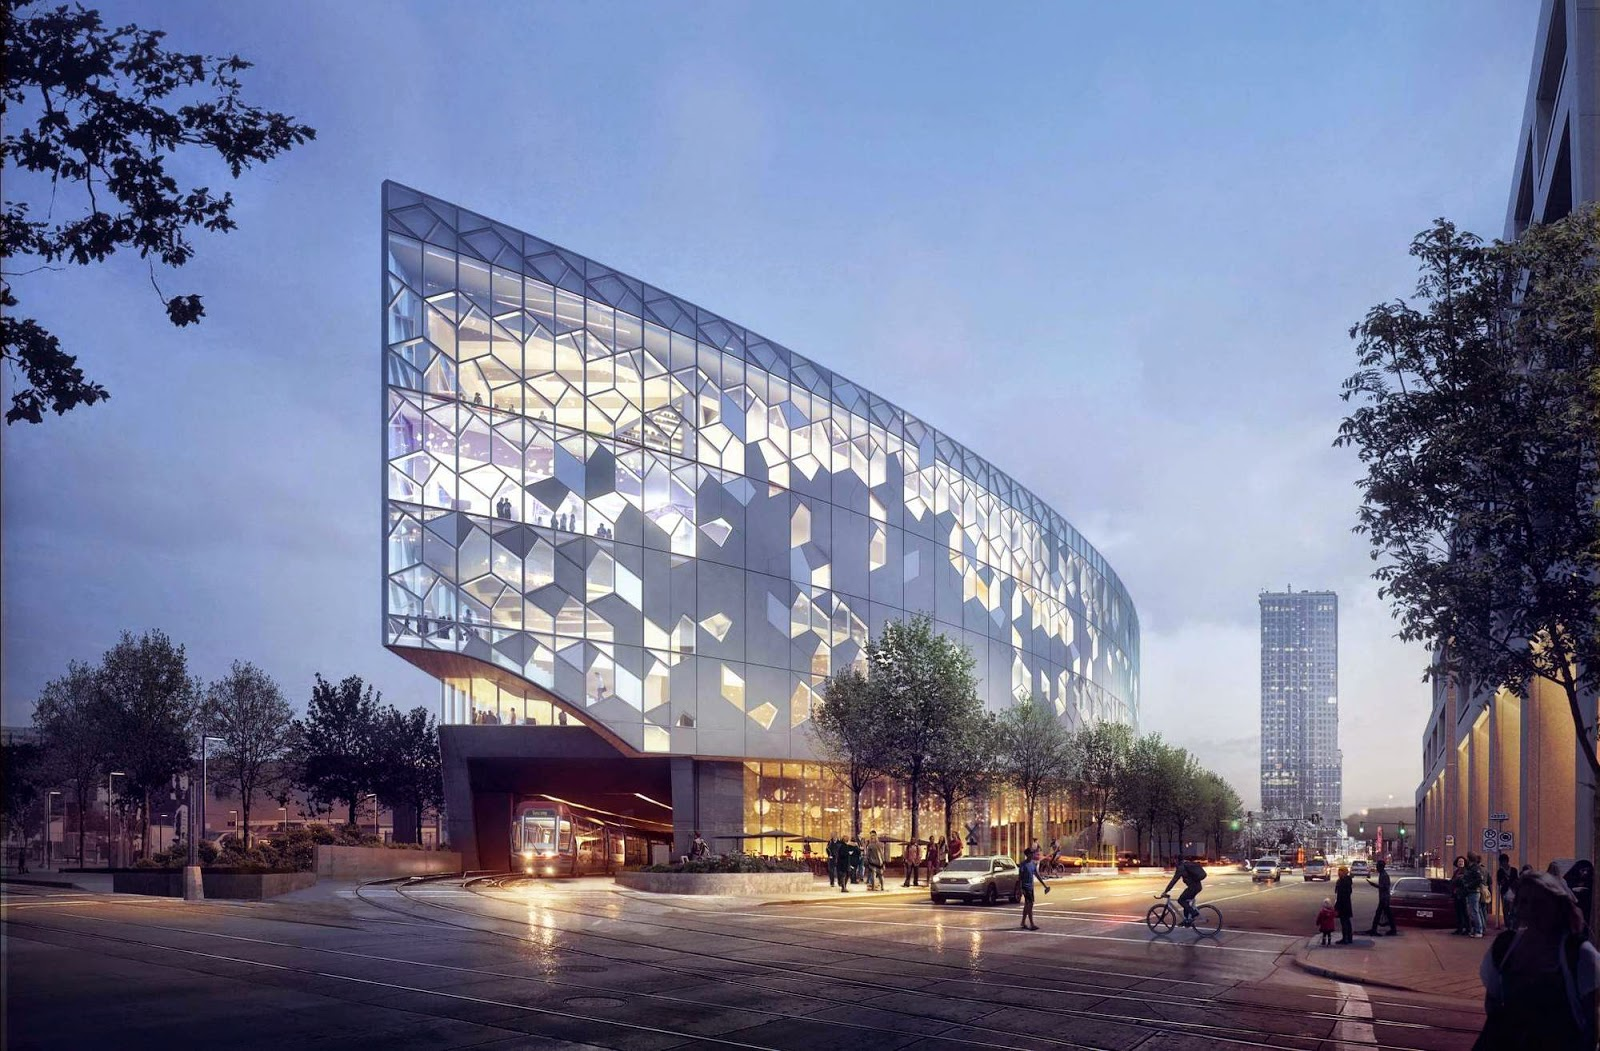 Calgary S New Central Library Visualizations By Mir